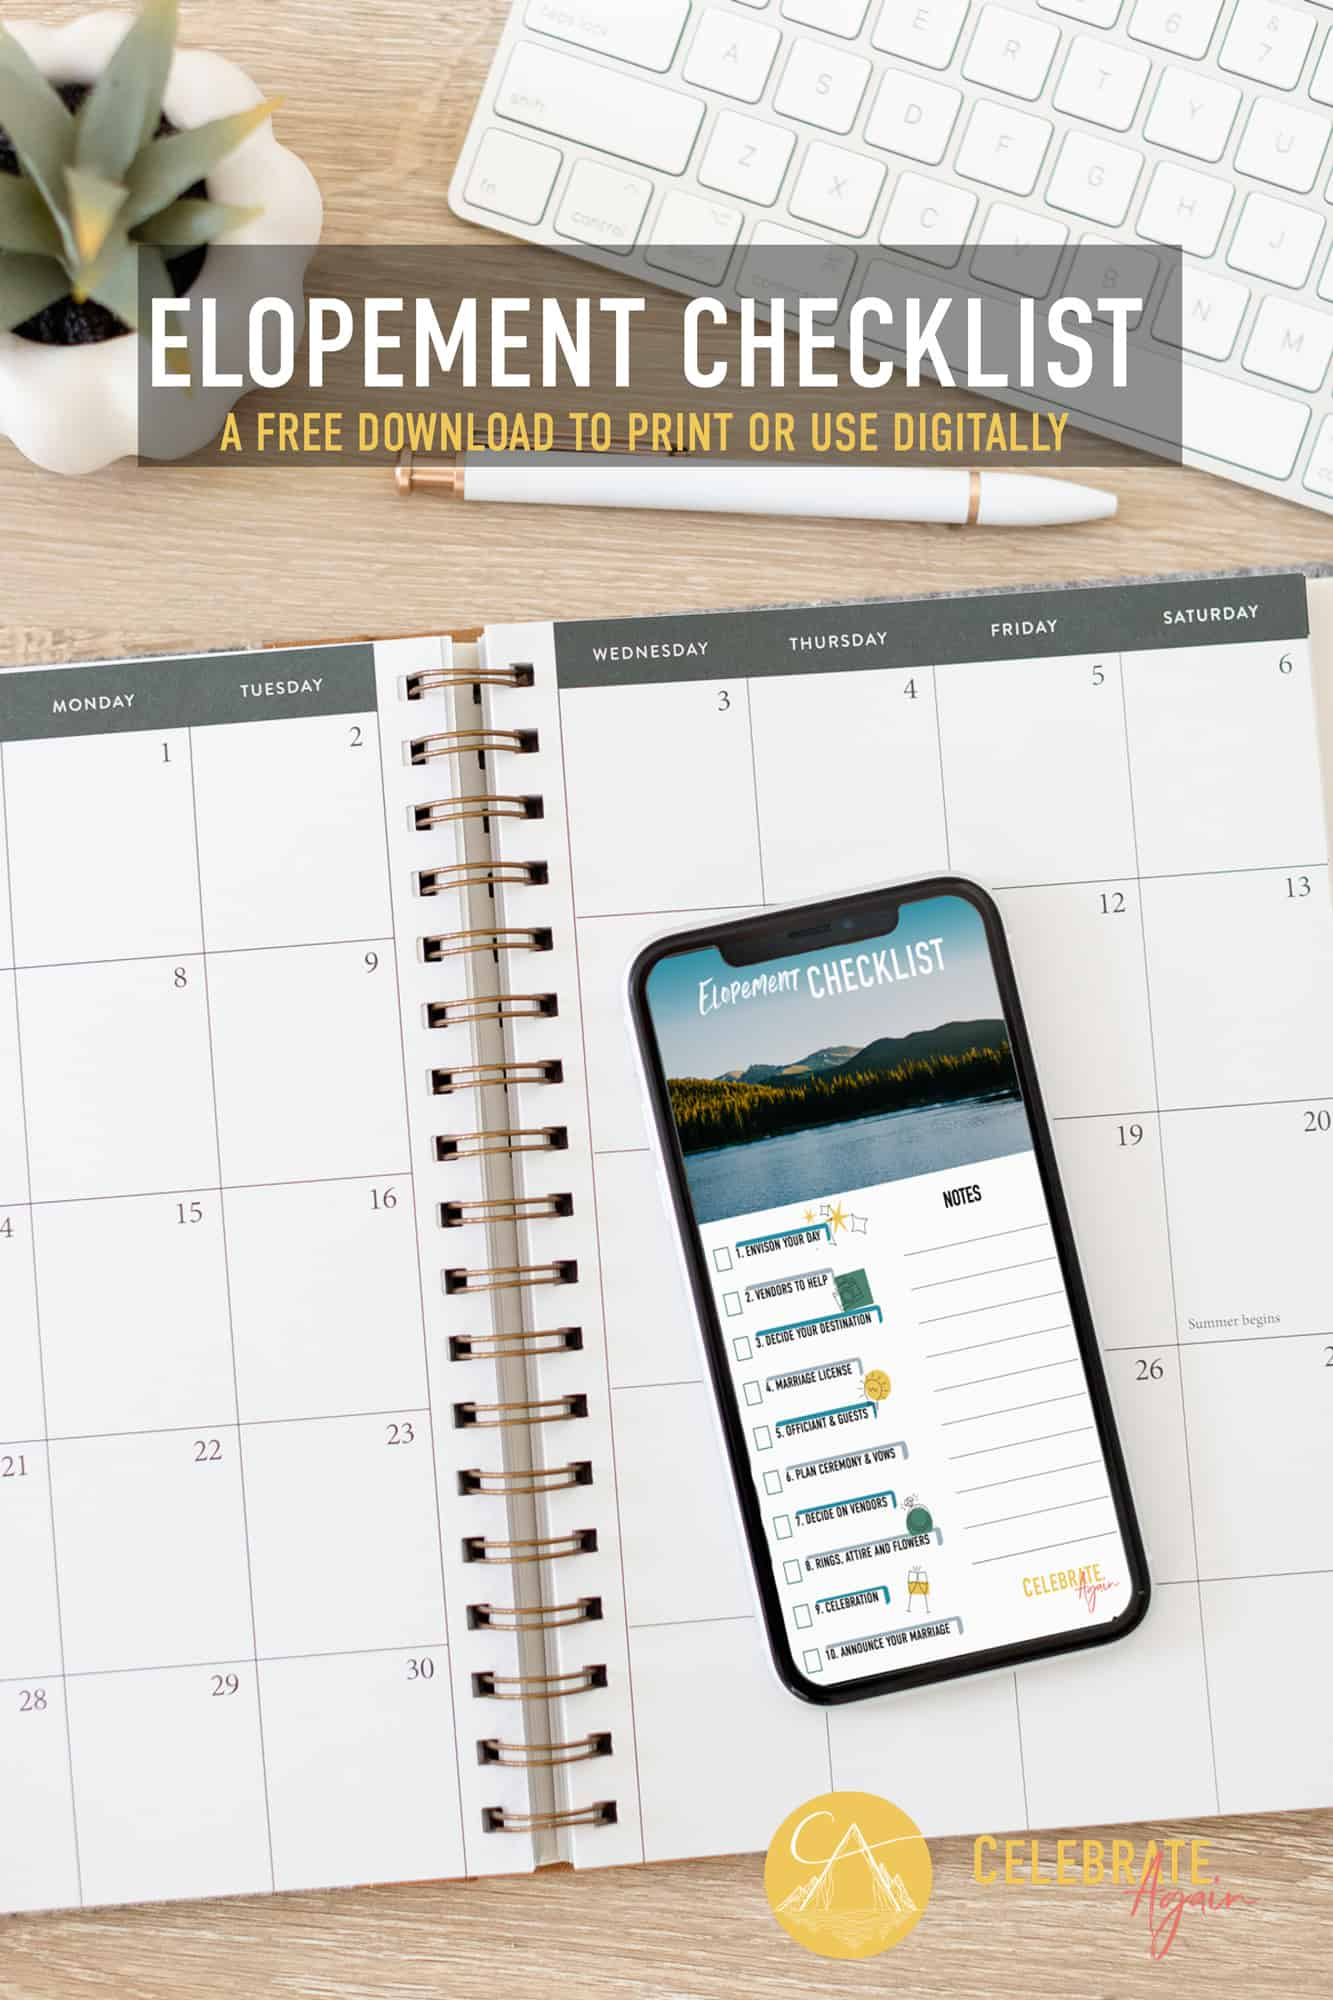 elopement checklist pdf on an phone on top of a calendar and keyboard near by